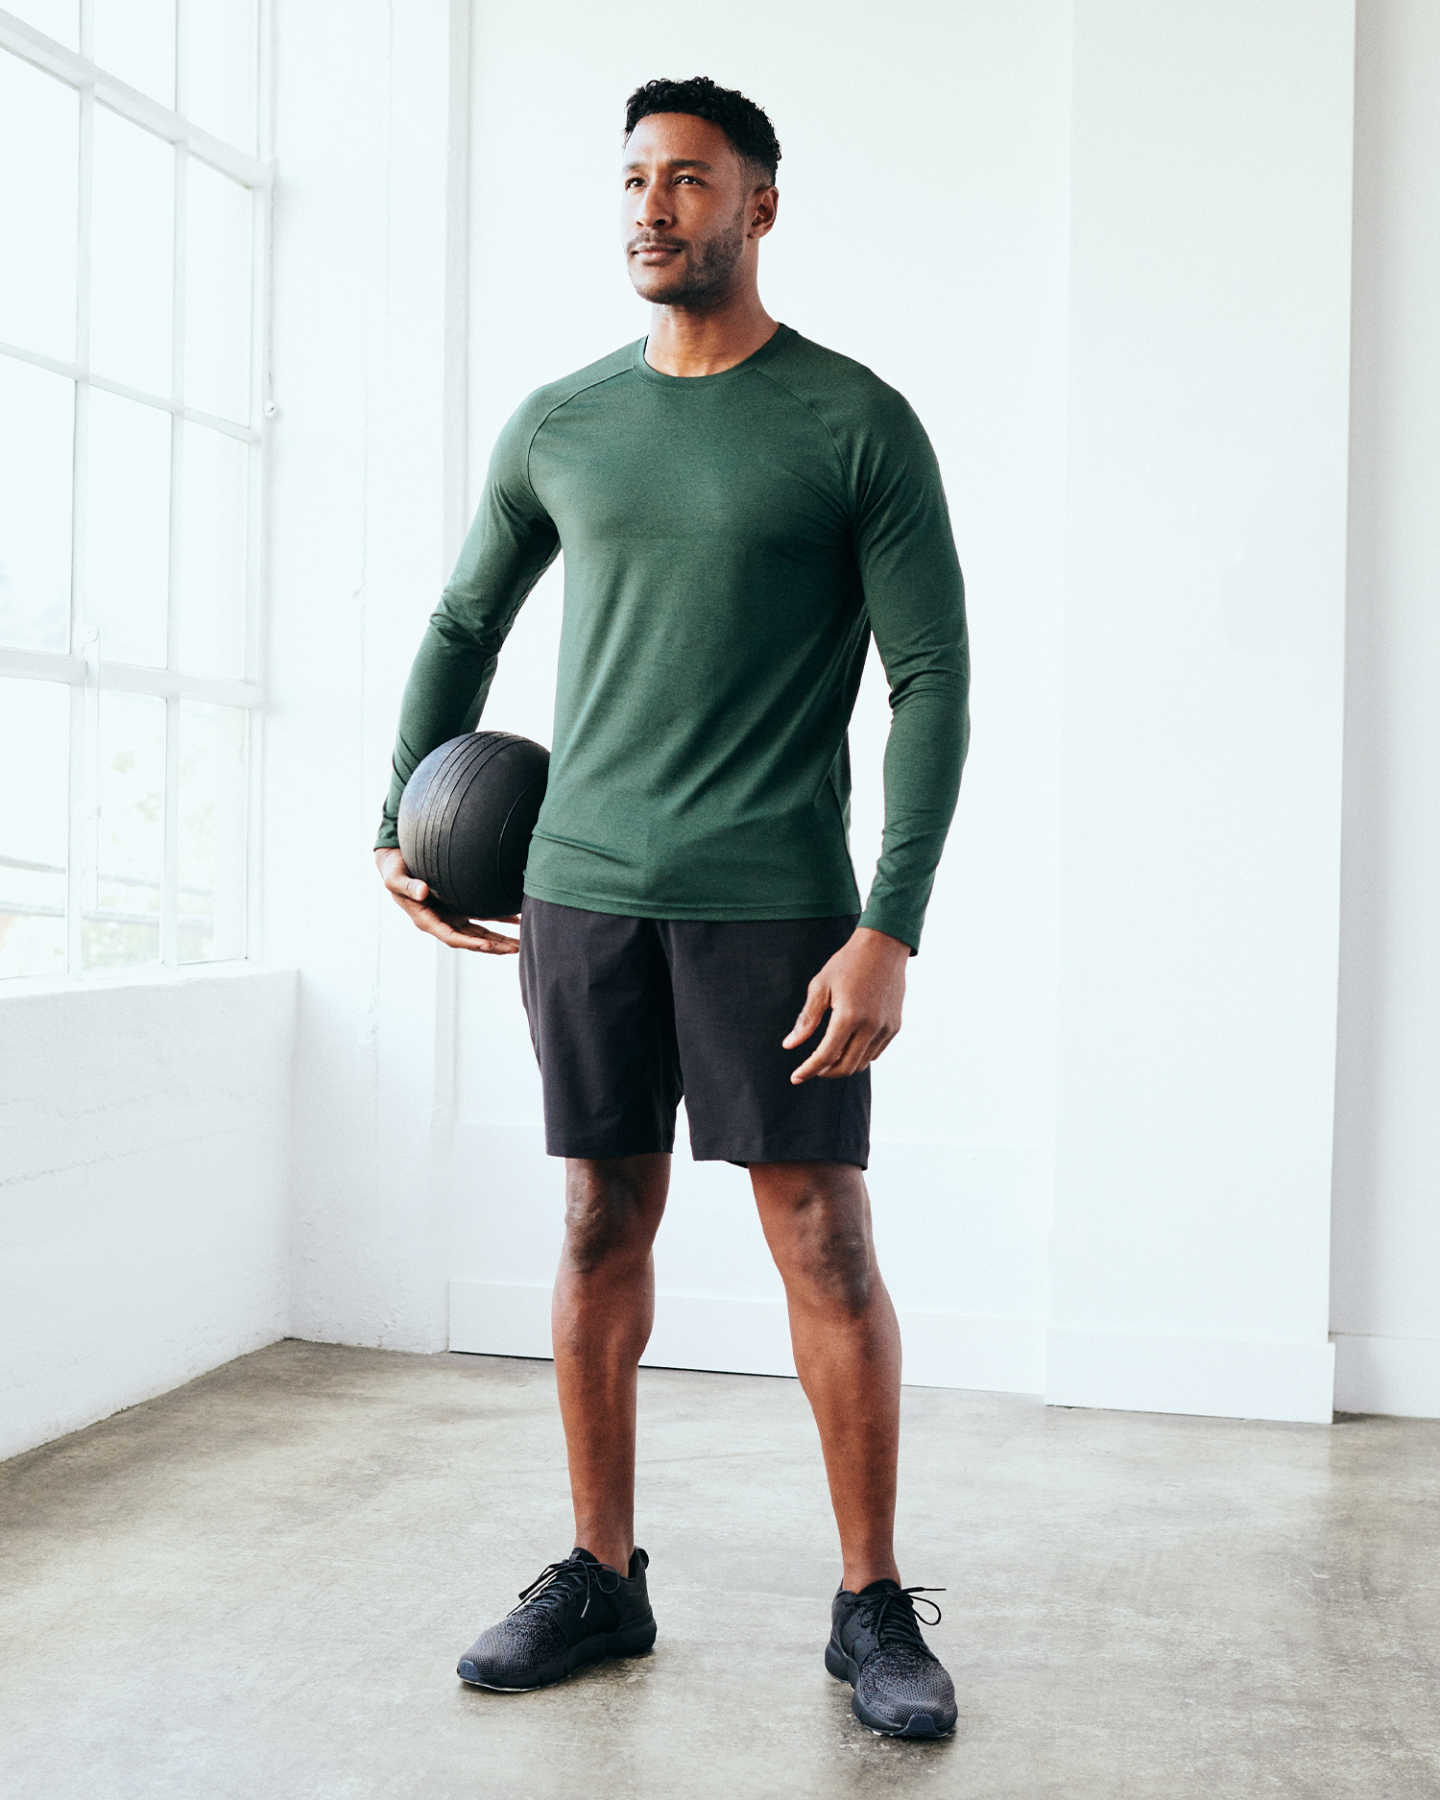 Flowknit Ultra-Soft Performance Long Sleeve Tee - Olive - 1